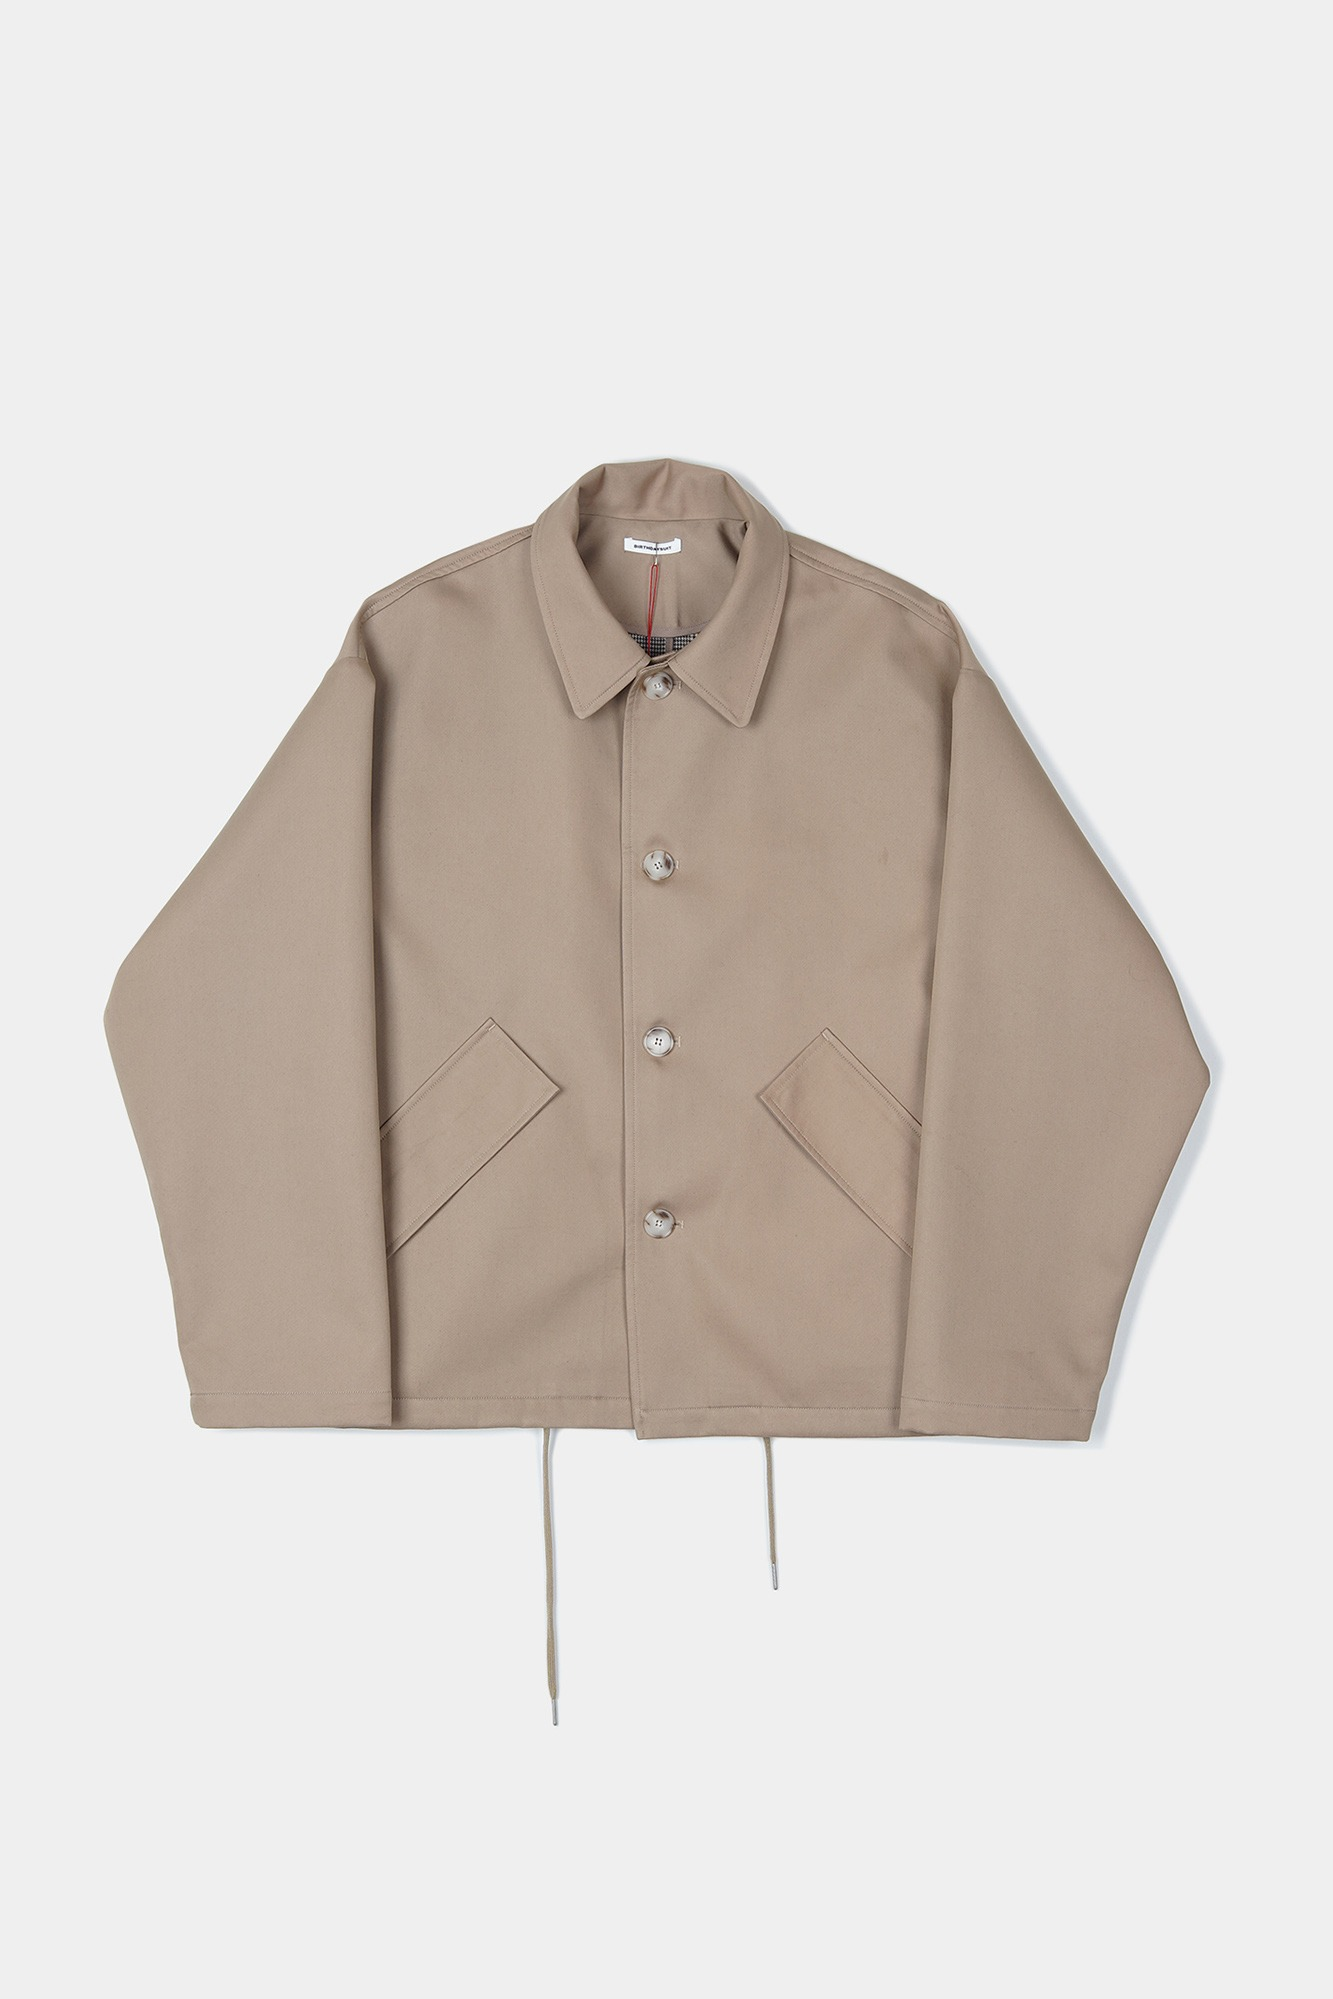 "BIRTHDAYSUIT Coach Coat ""Beige"""